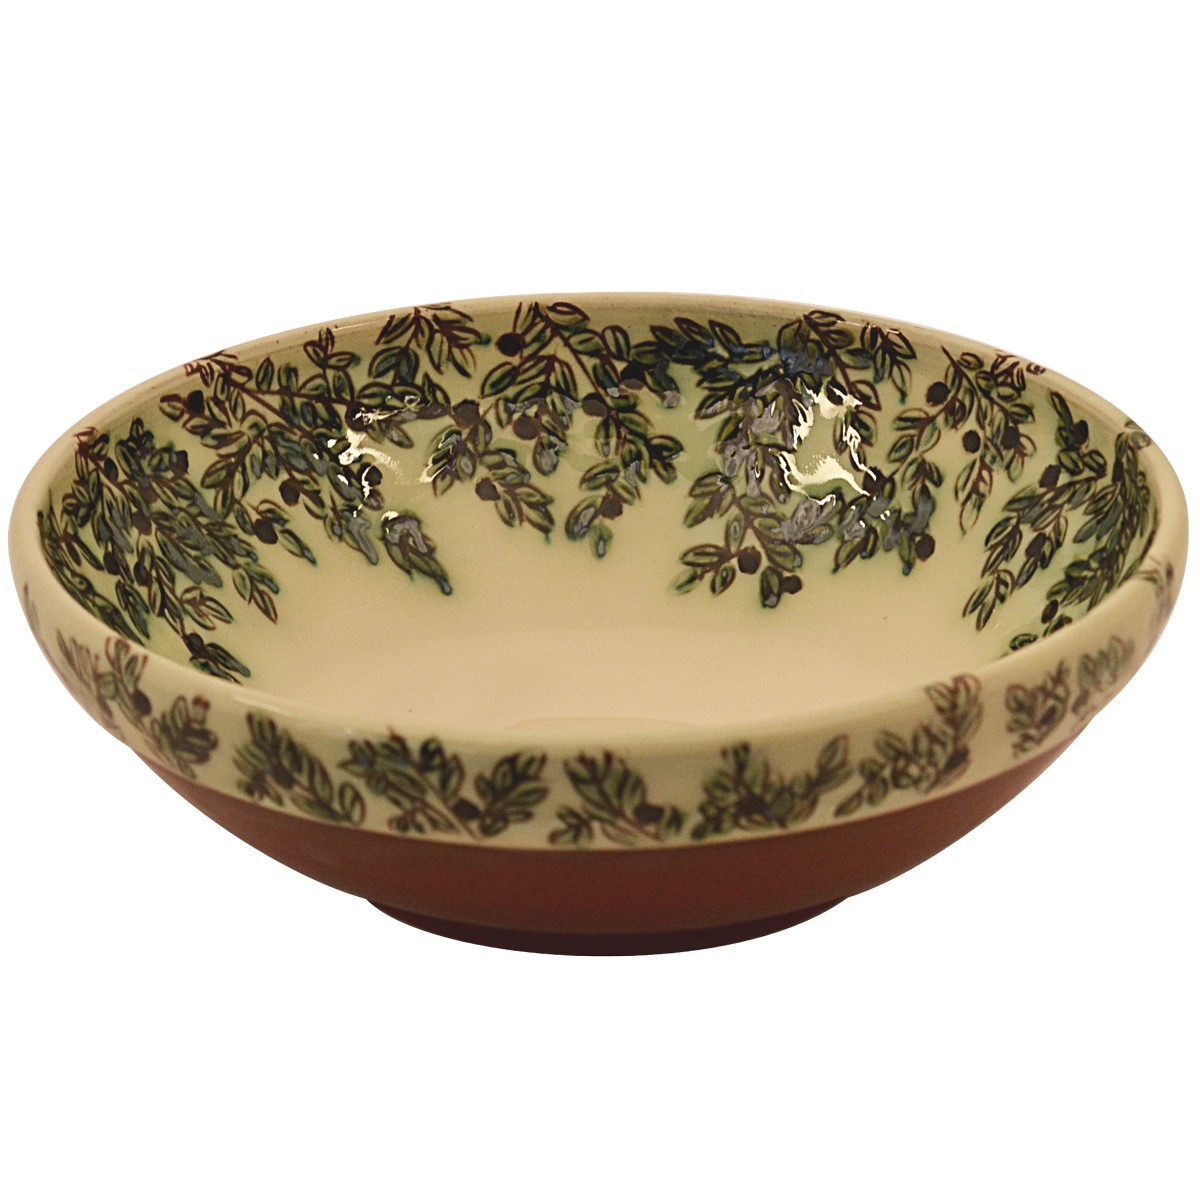 Decorative bowls for centerpieces-Ceramic-Olive Leafs-1